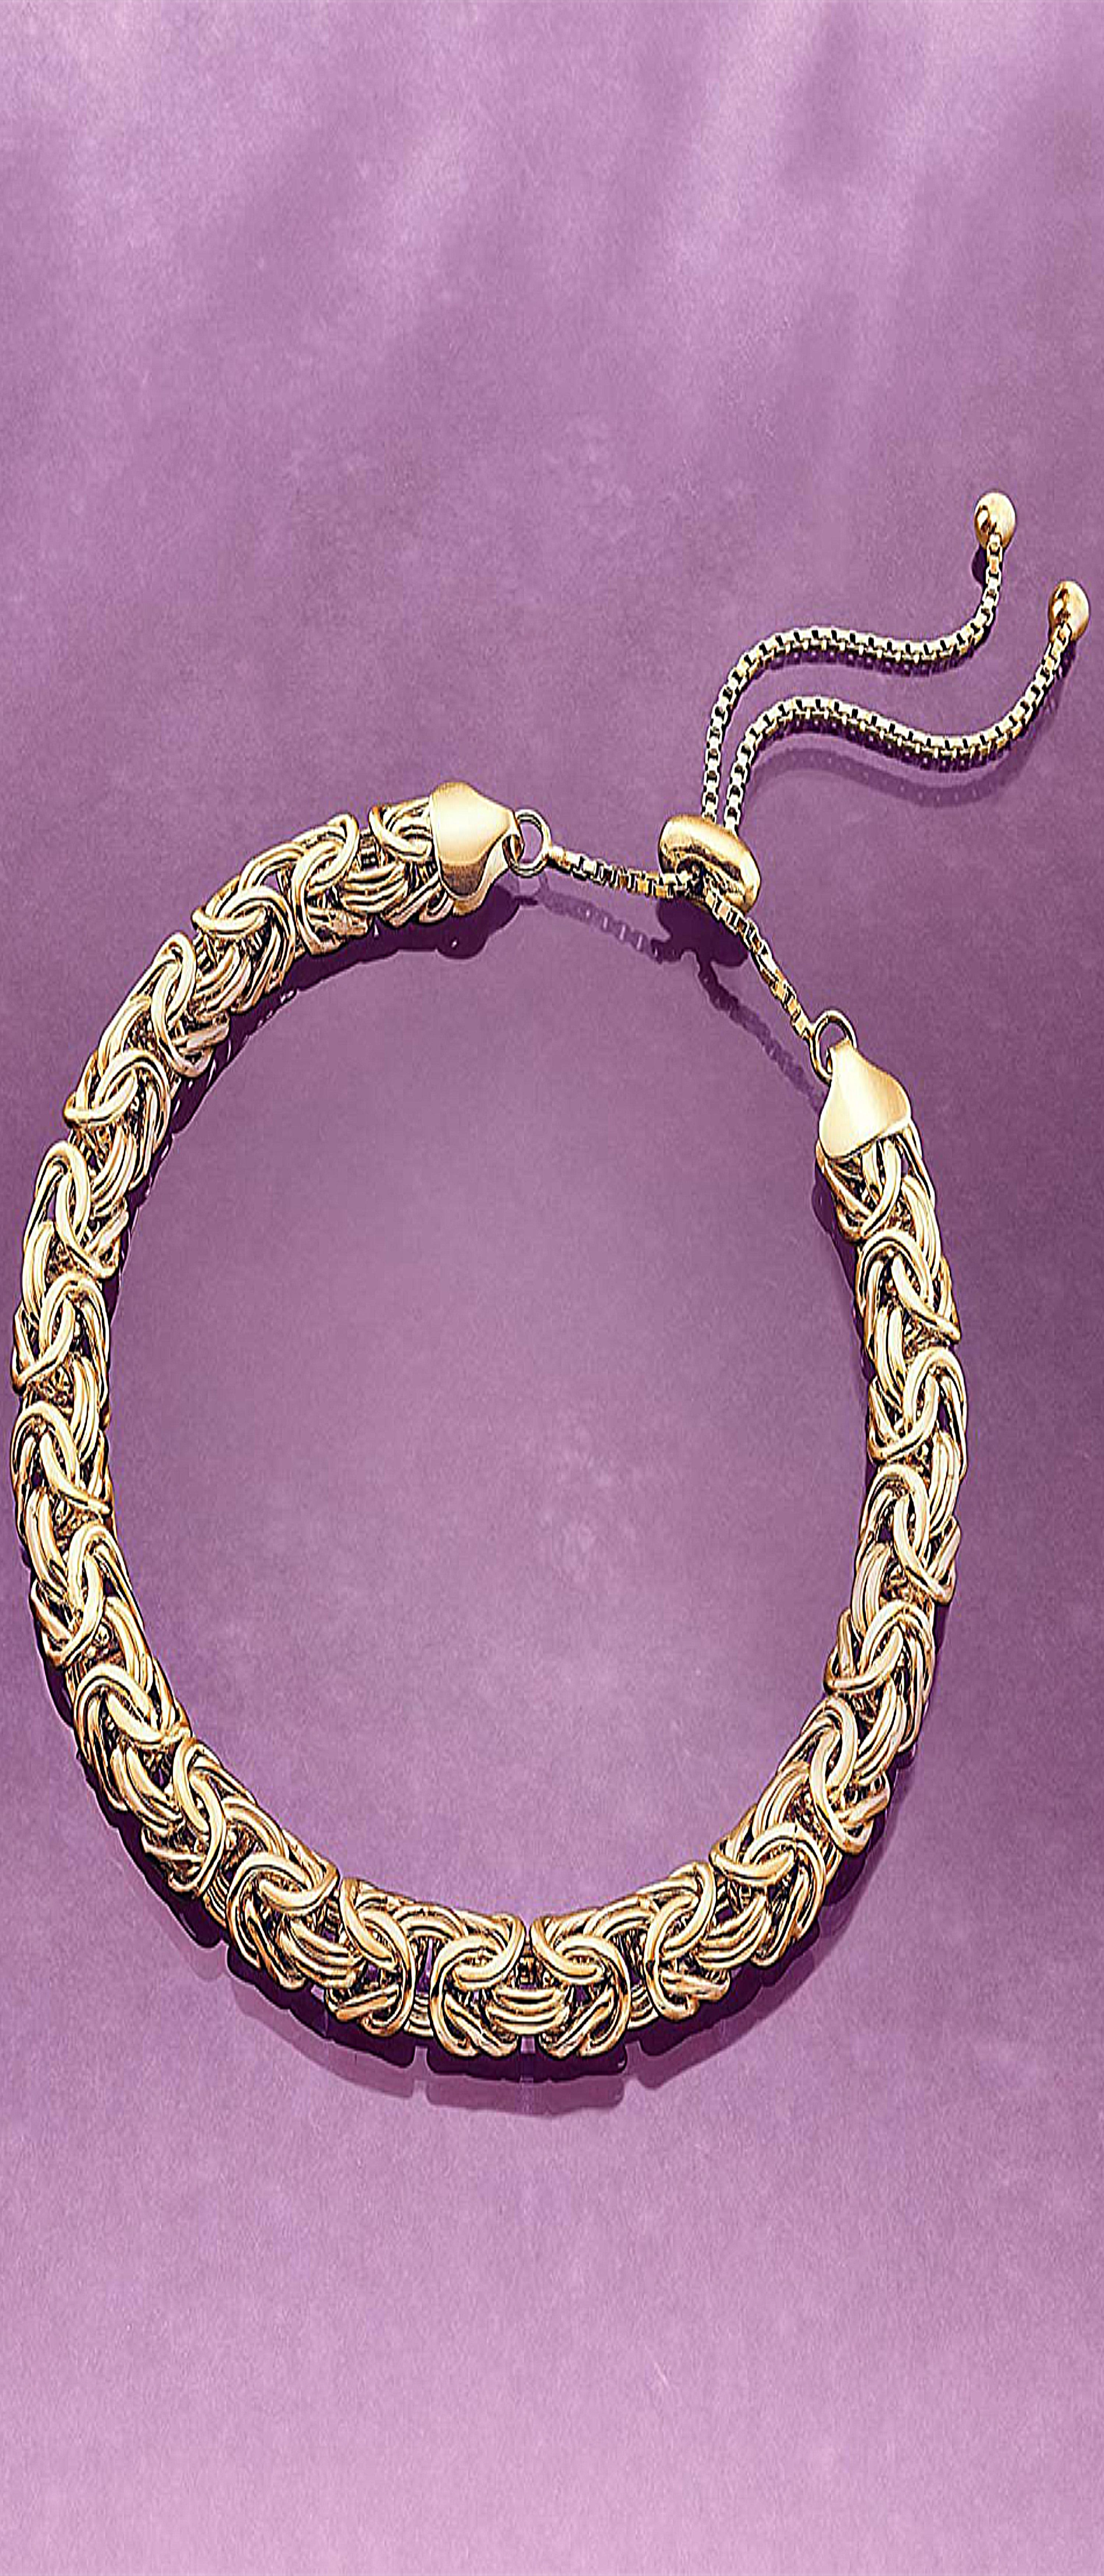 Rosssimons kt yellow gold over sterling silver byzantine bolo